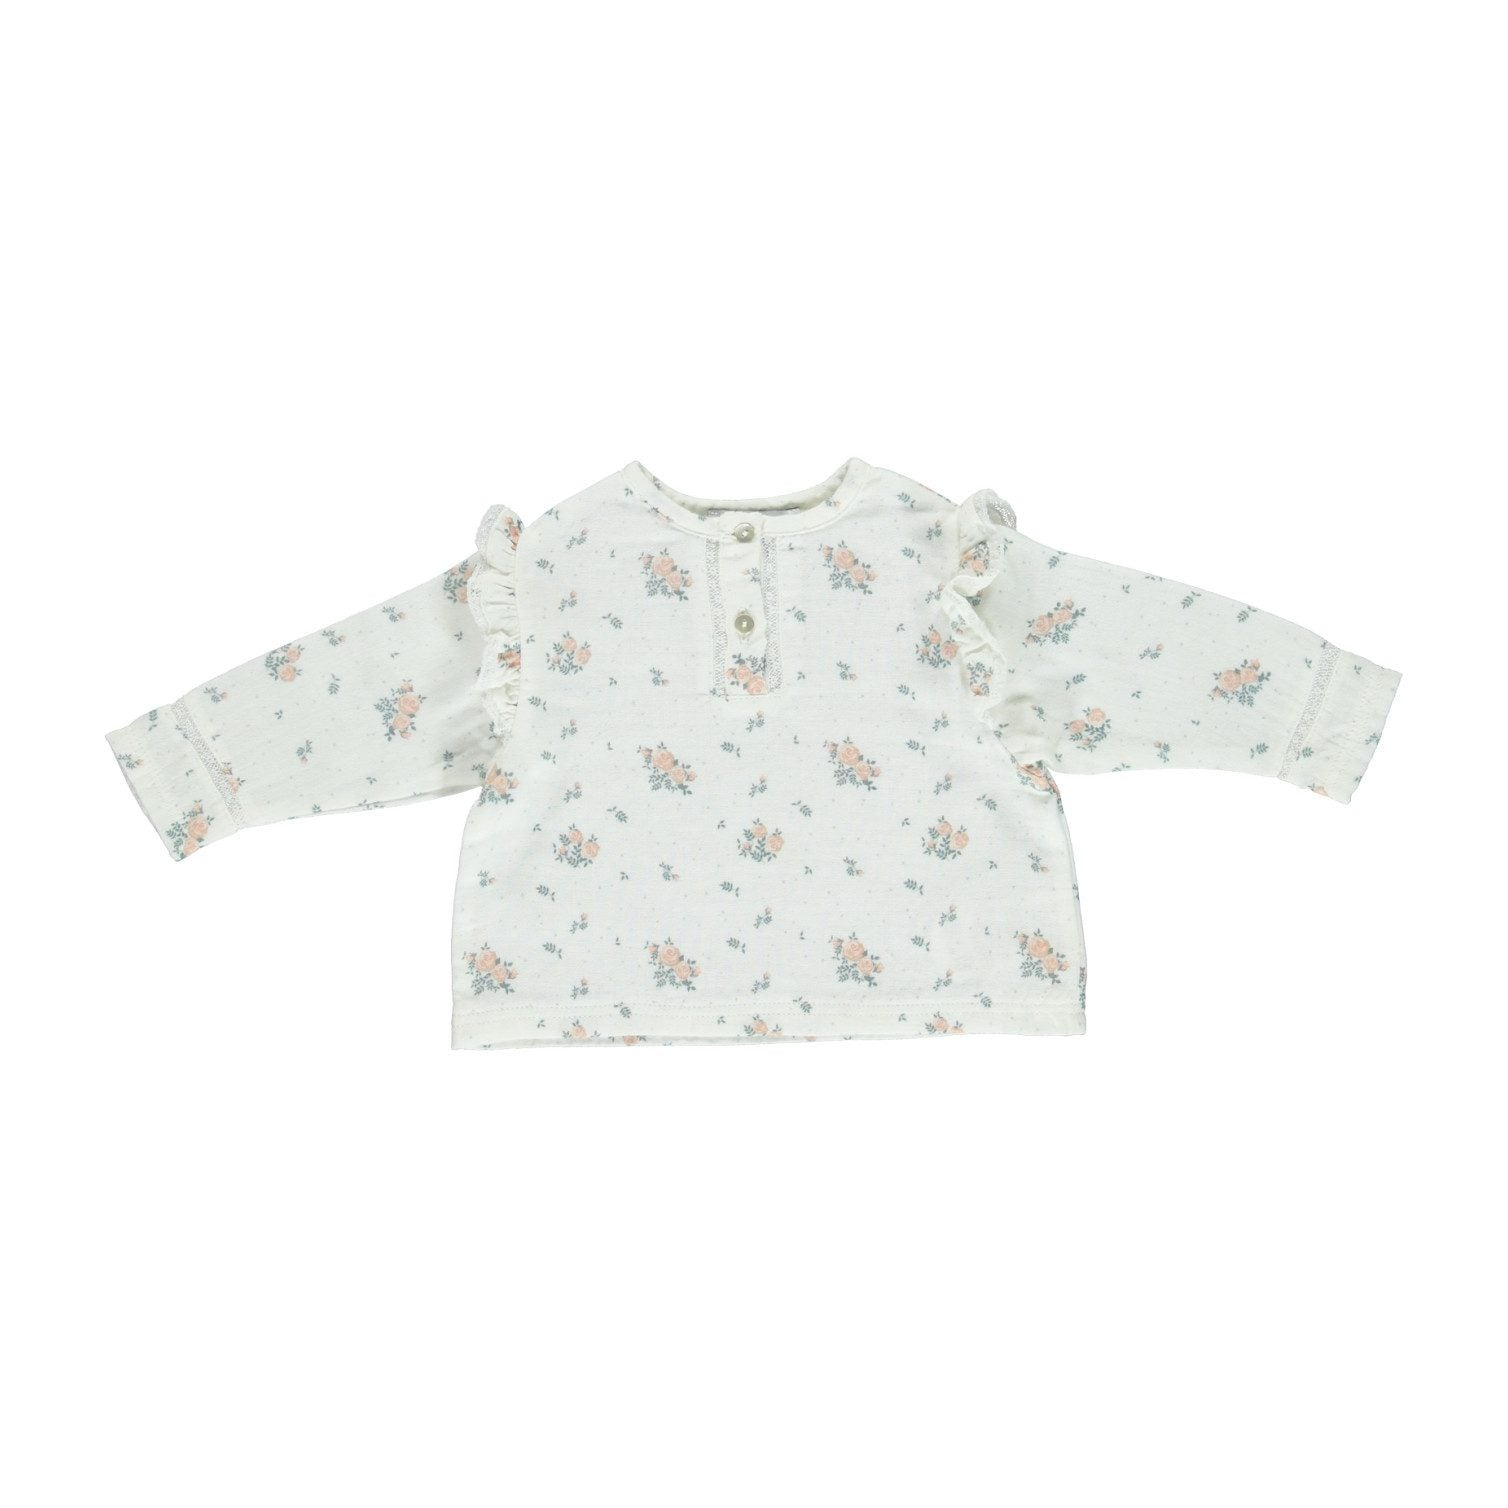 ORGANIC KAIA BLOUSE, WINTER BLOSSOM | BEBE ORGANIC - Spinel Boutique